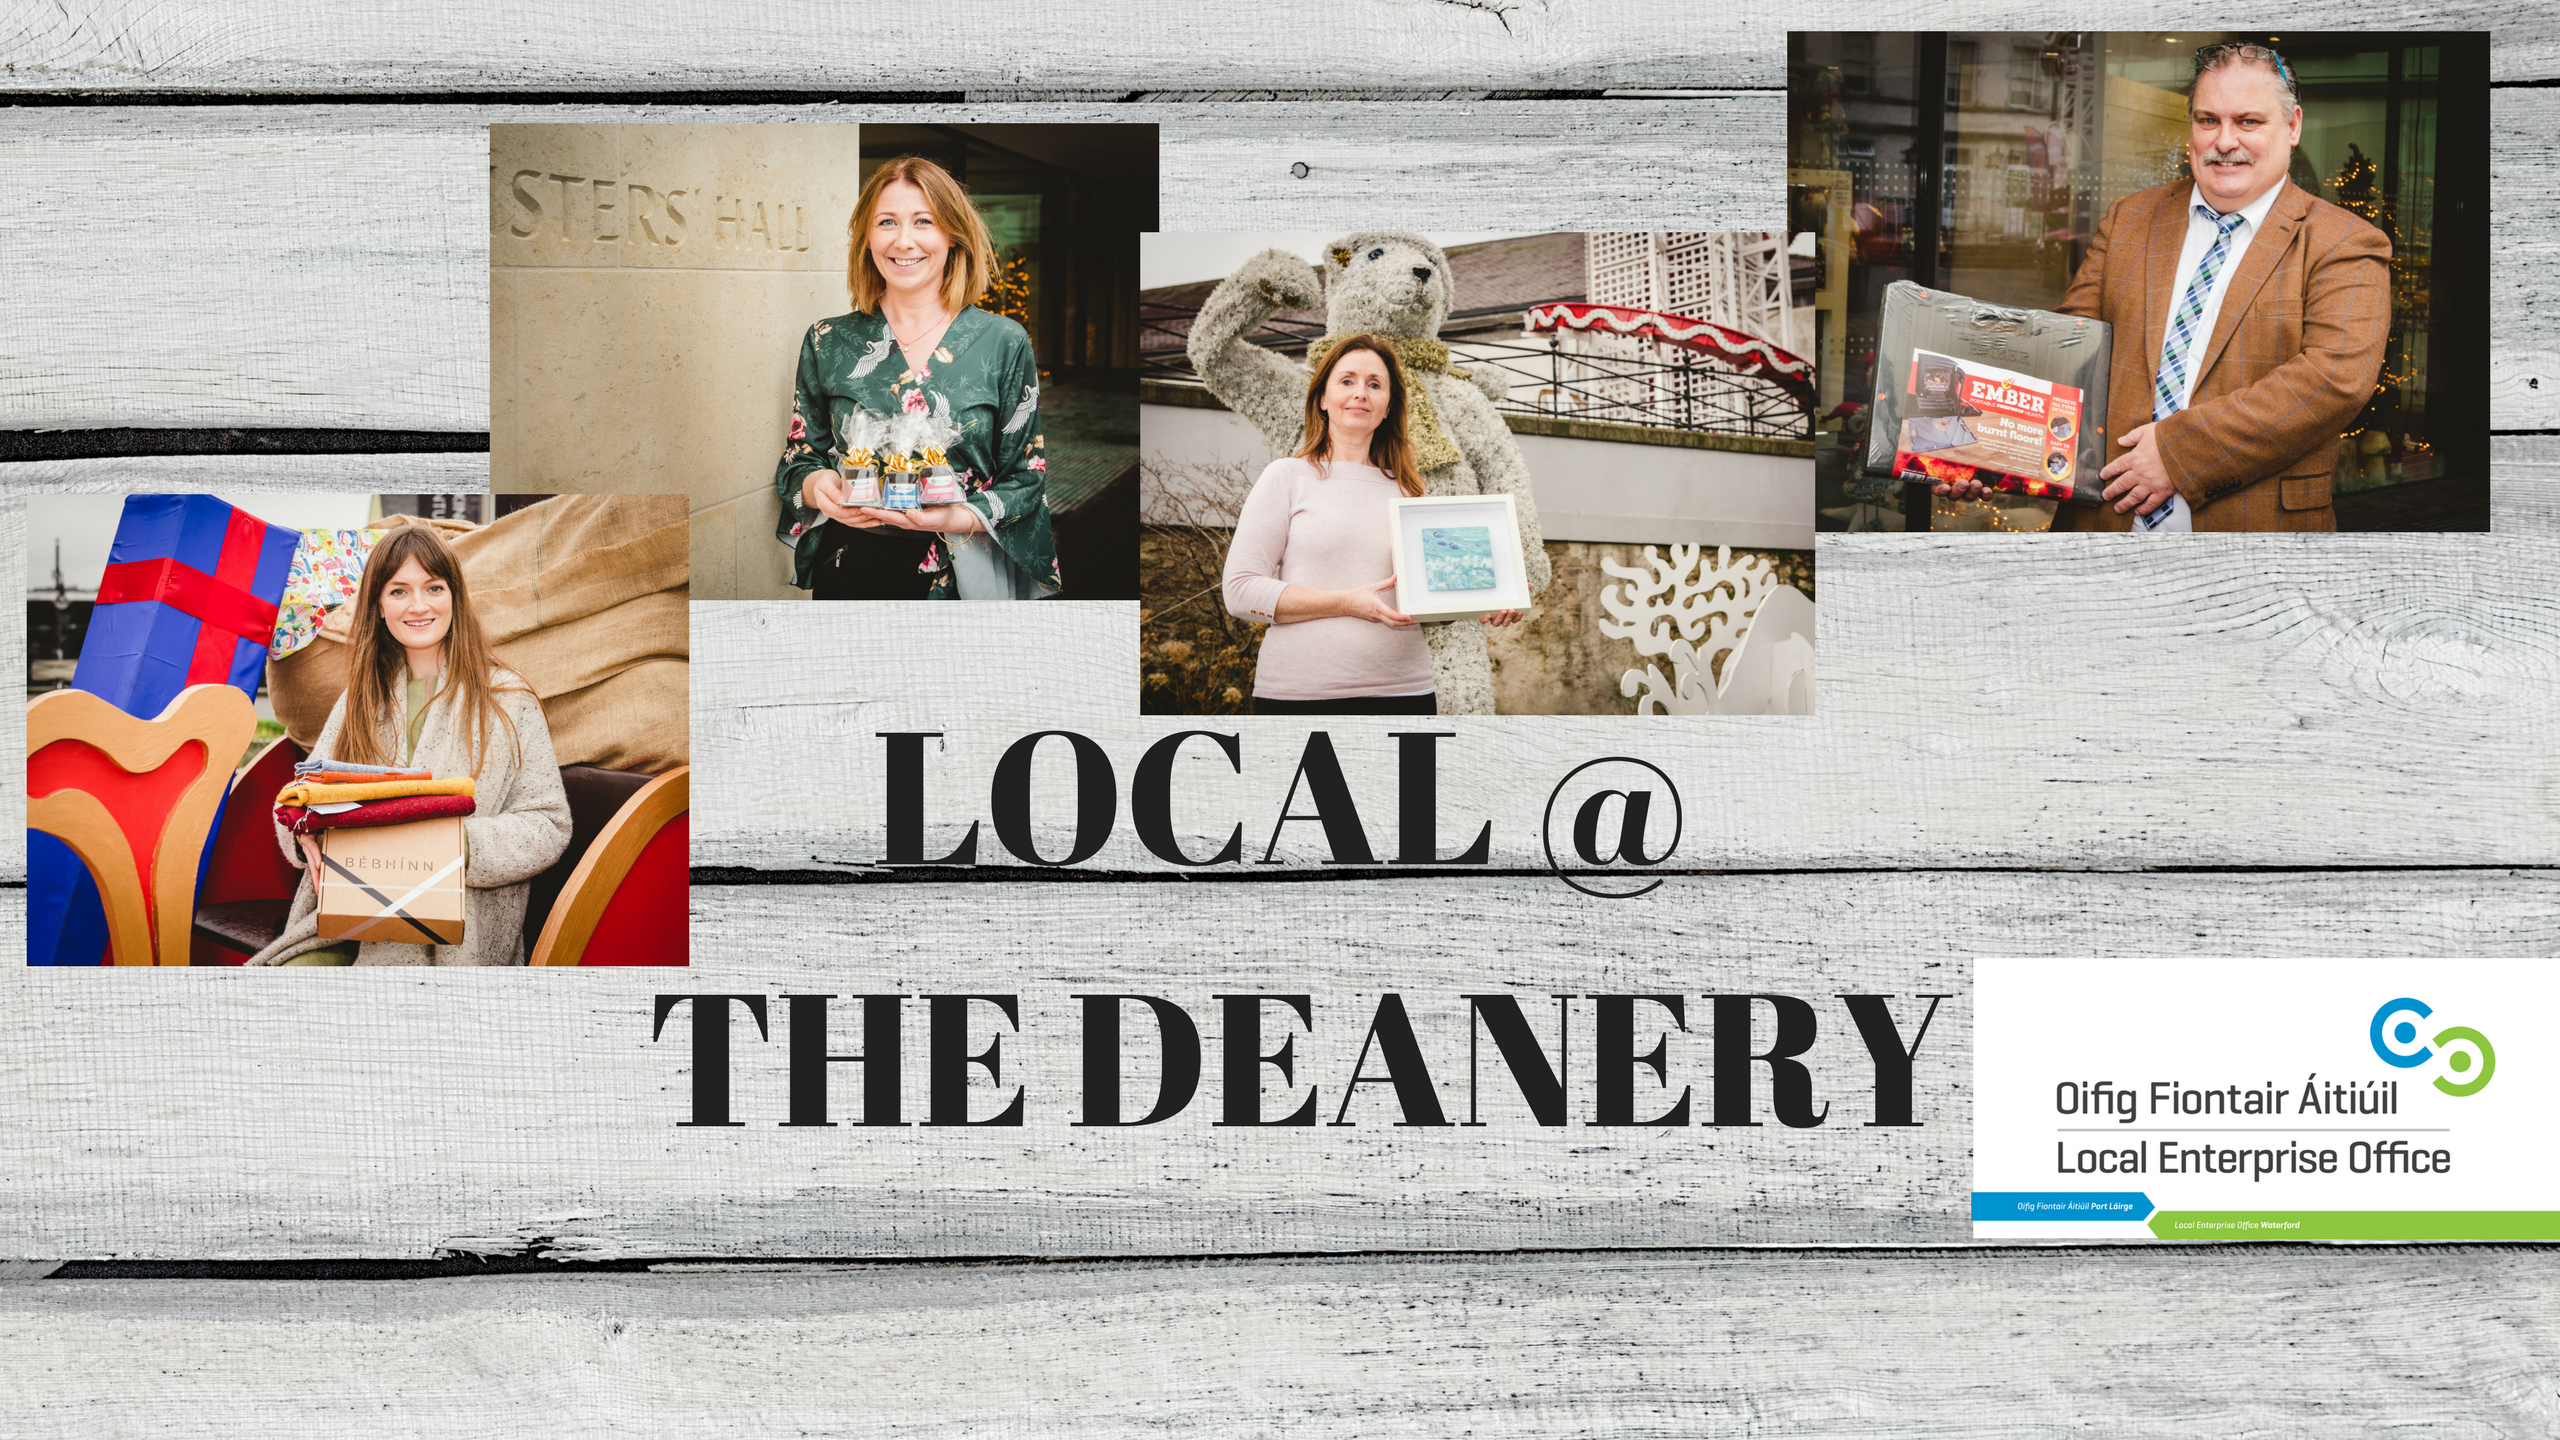 Local @ the Deanery 3